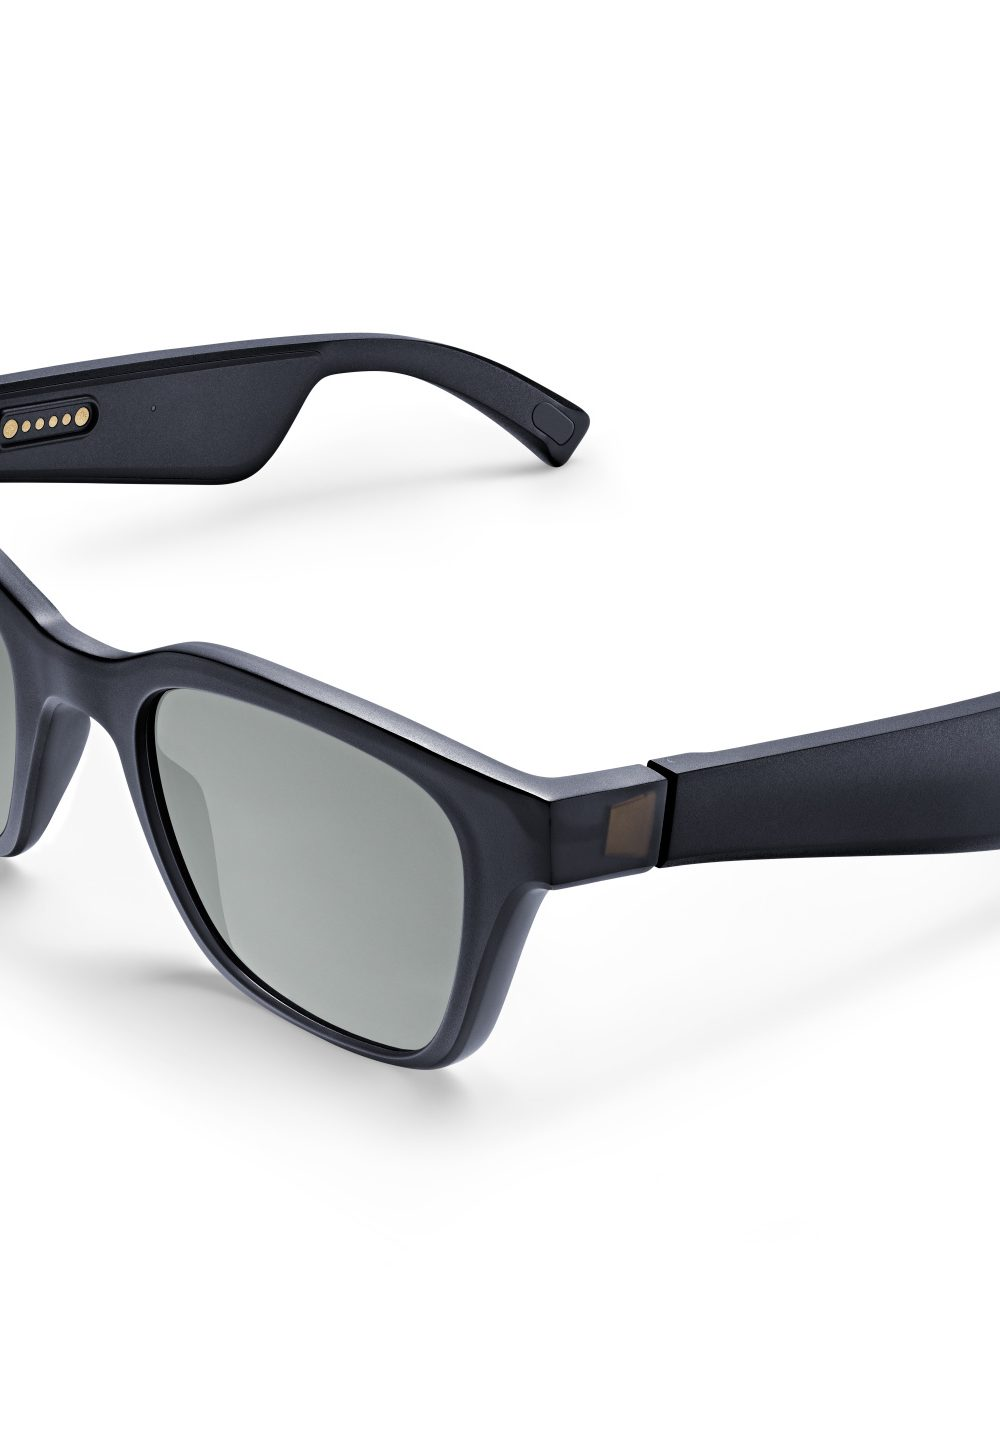 Bose Frames- The Perfect Techie Holiday Gift